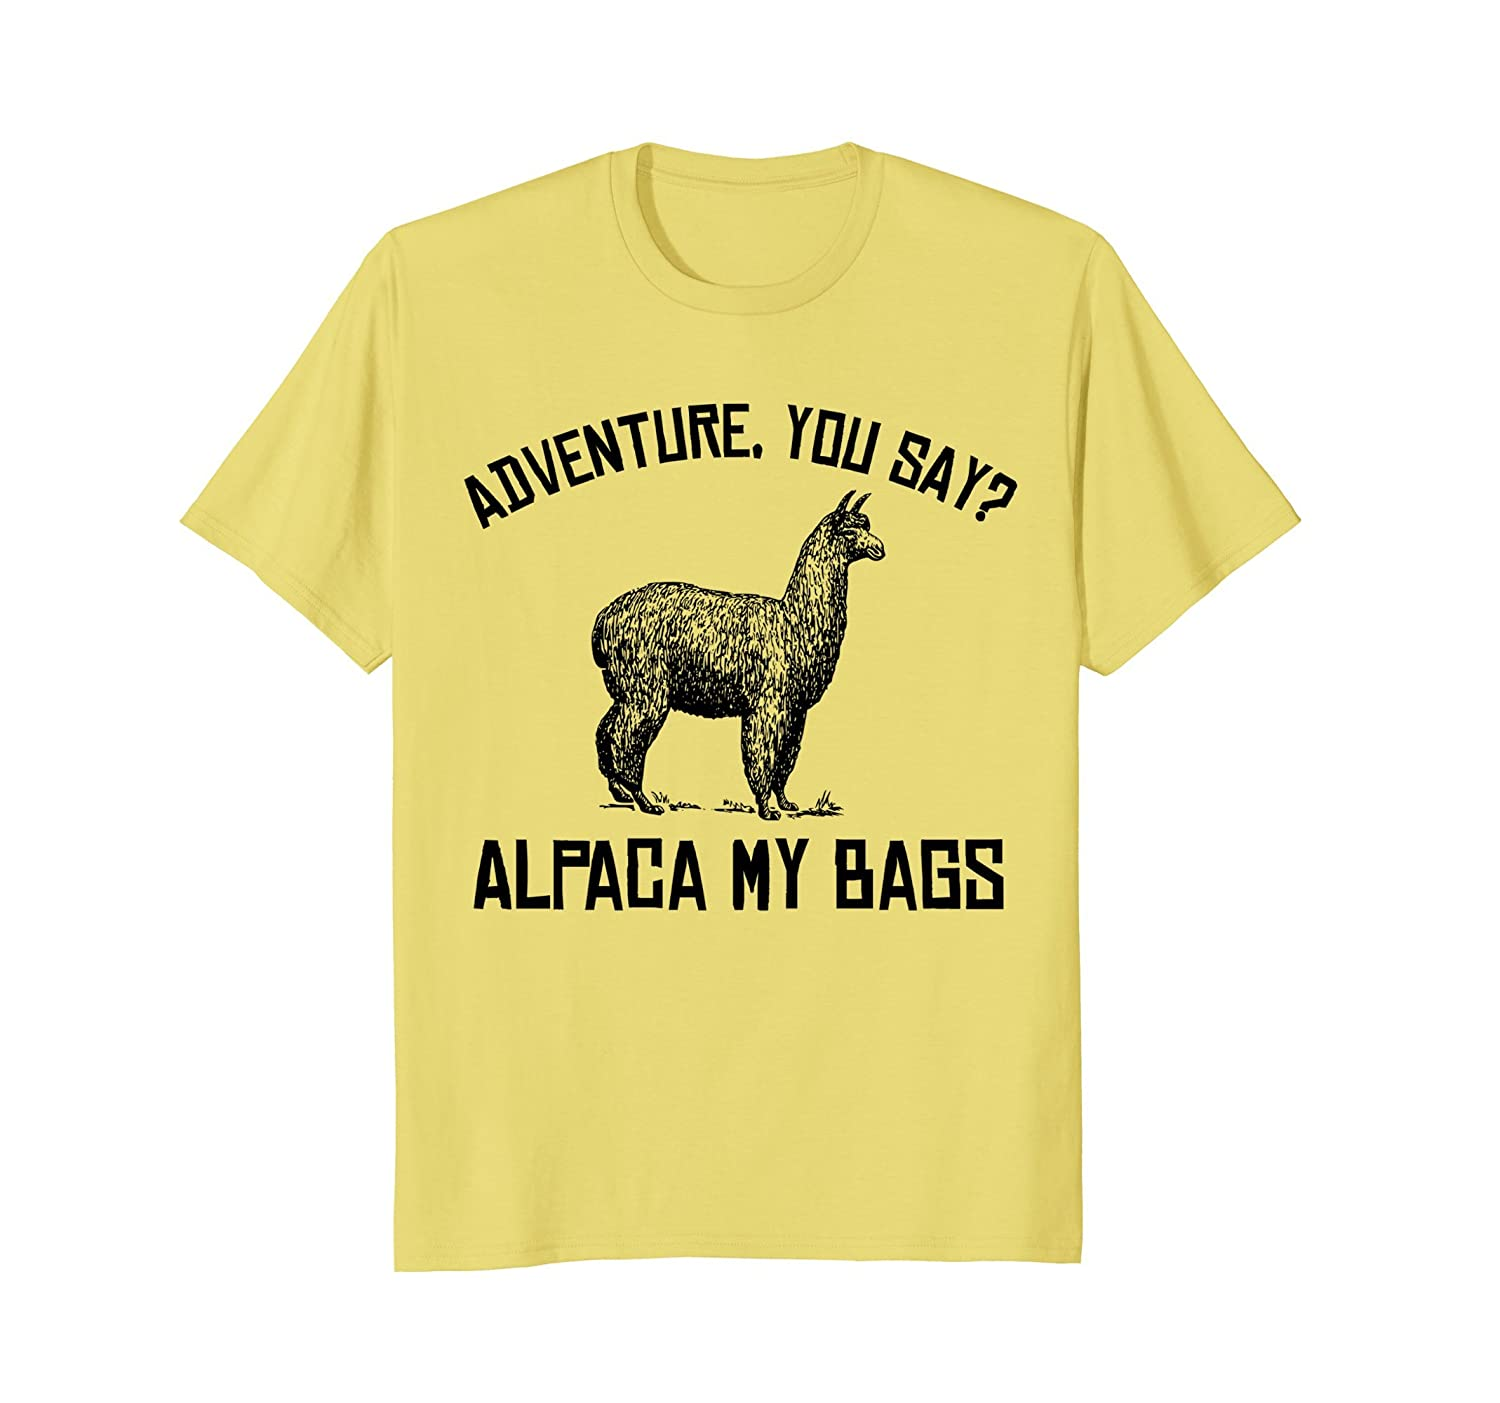 d8f60f485 Imported Machine wash cold with like colors, dry low heat. If you love  adventure and love alpacas, this shirt is ...